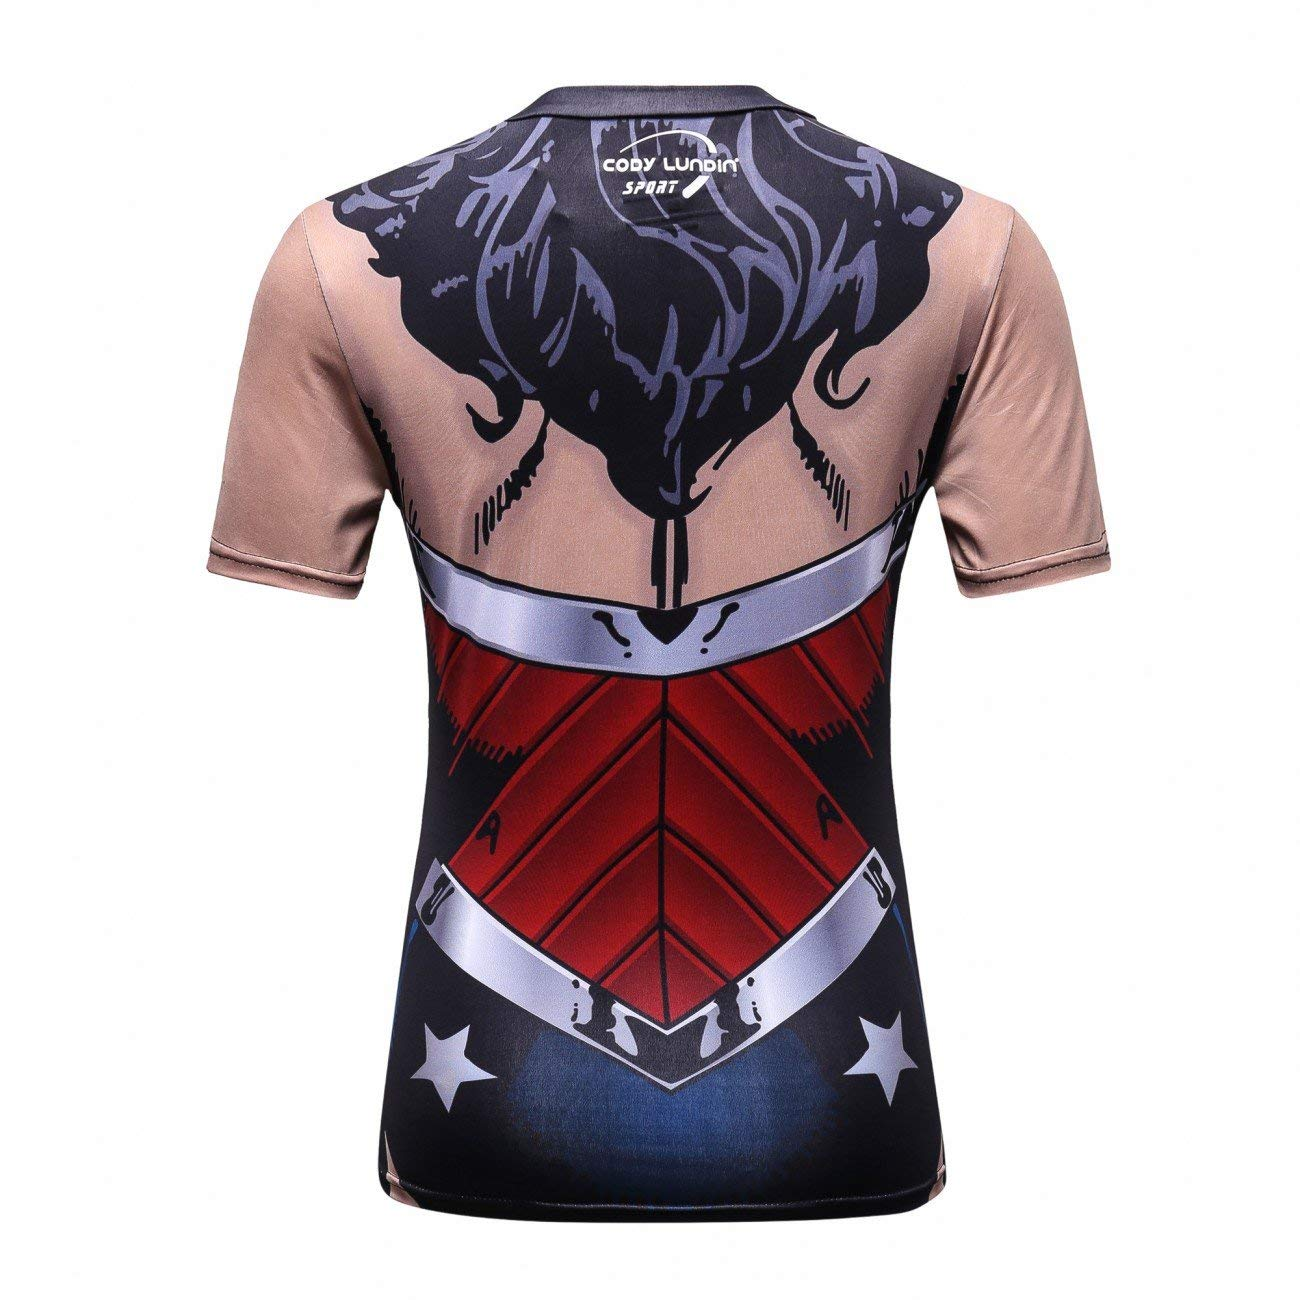 Wonder Woman compression tee shirt - back side